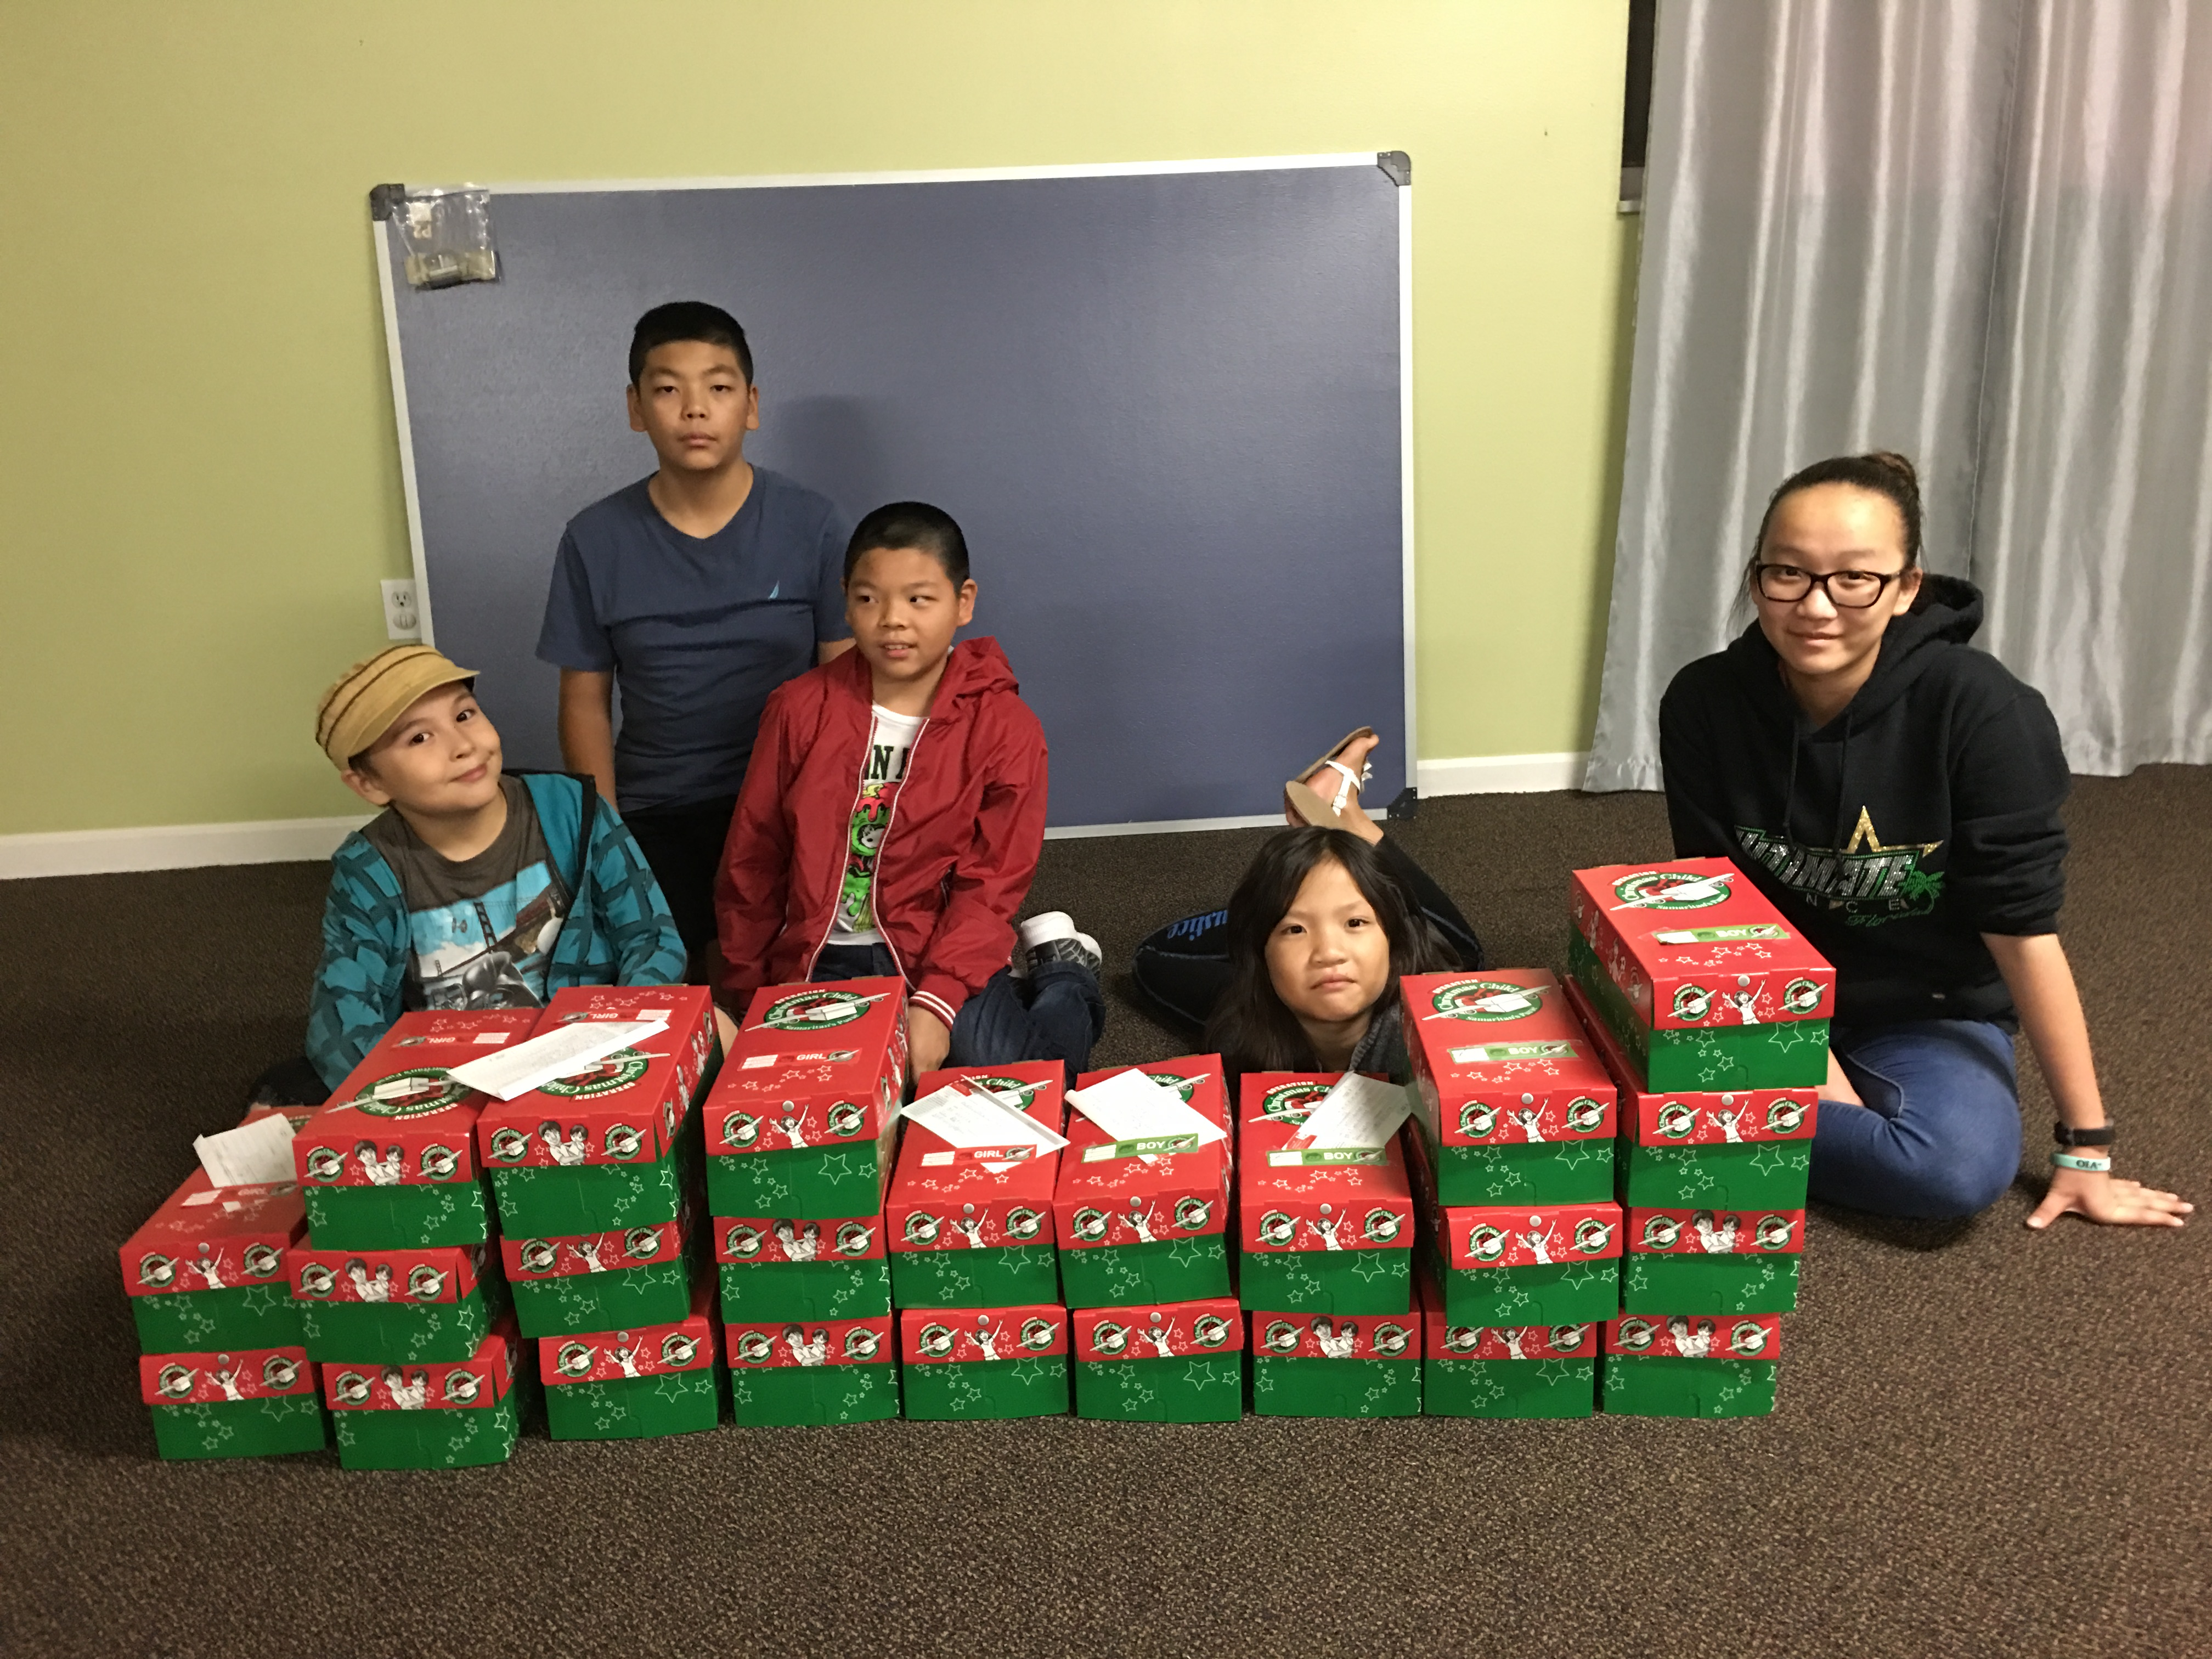 MCCMAC Picture 11-16-18 Operation Christmas Child Shoe Boxes (2)